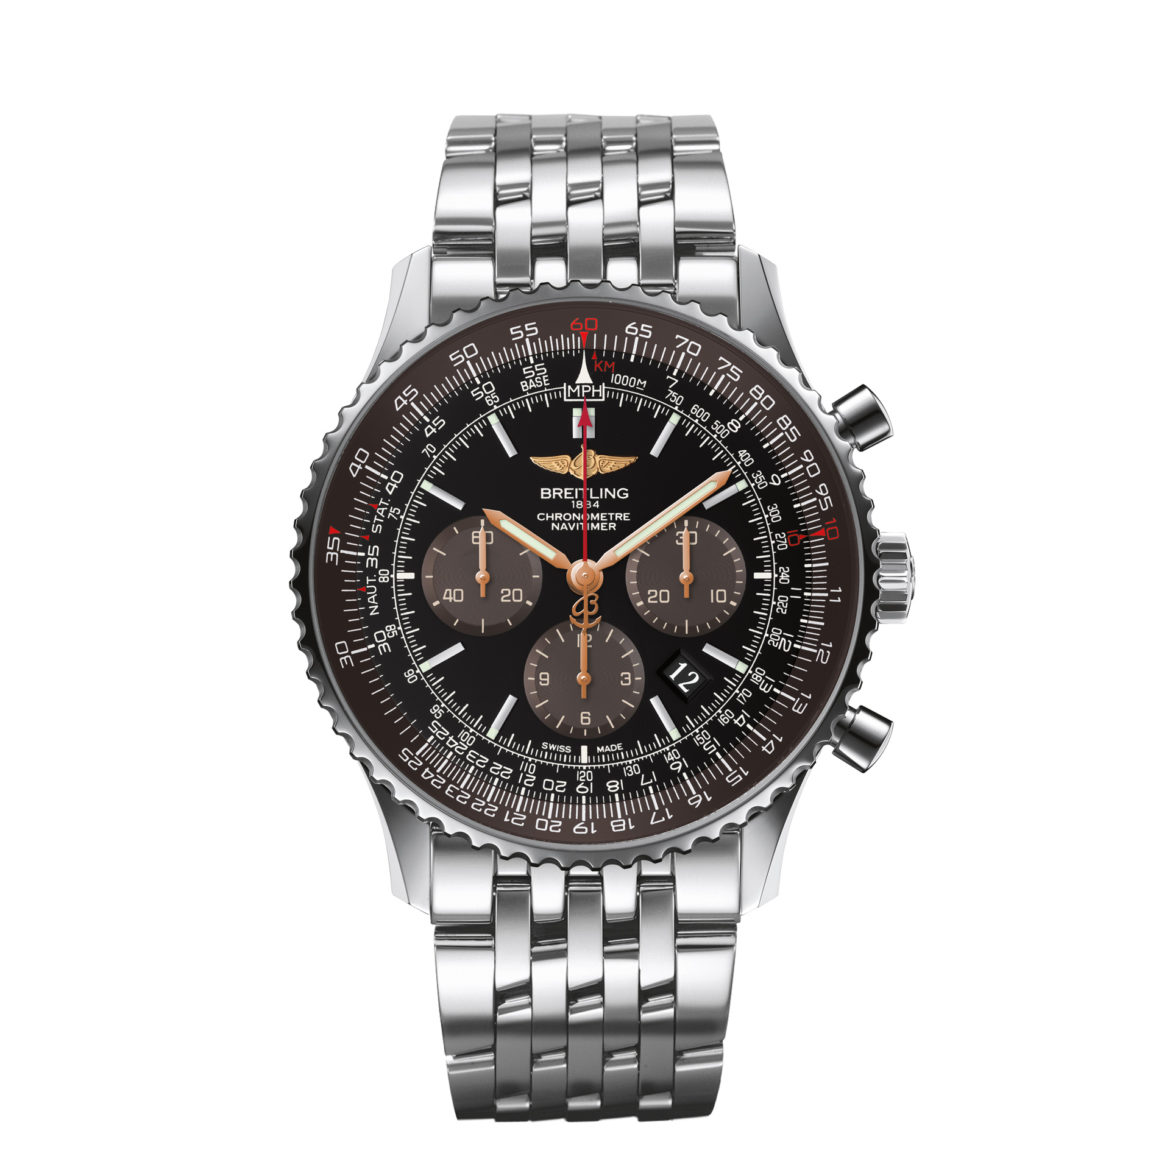 Breitling Navitimer 01 (46 mm) Limited Edition Panamerican Black